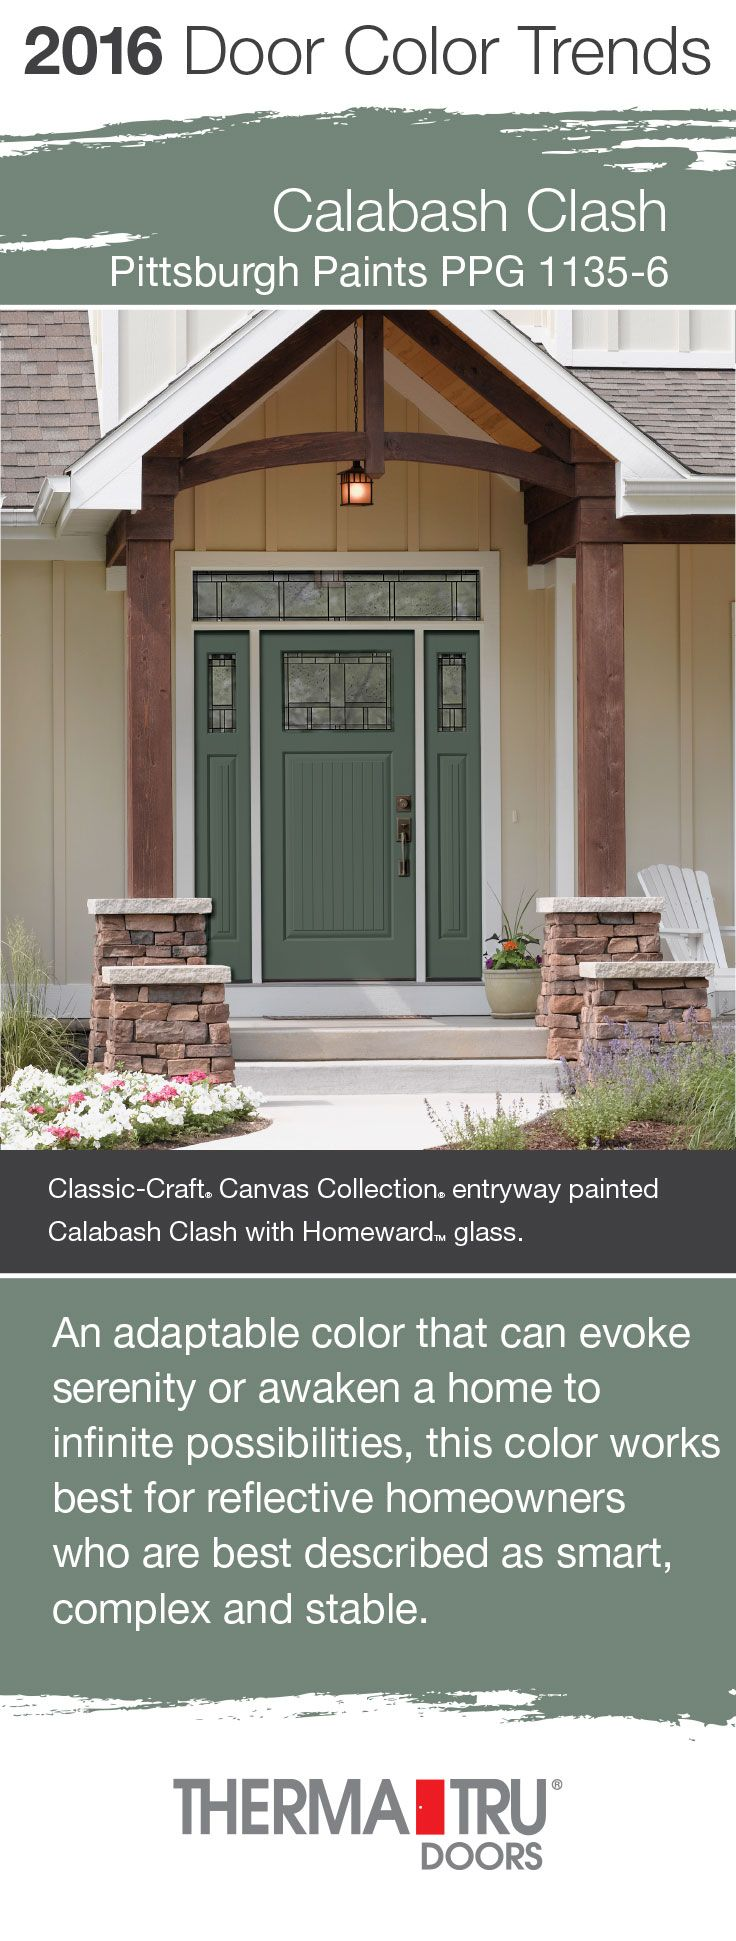 Calabash Clash by Pittsburgh Paints – one of the front door color trends for 2016 – shown here on a Classic-Craft Canvas Collection door from Therma-Tru.  #FrontDoor #CurbAppeal #Color